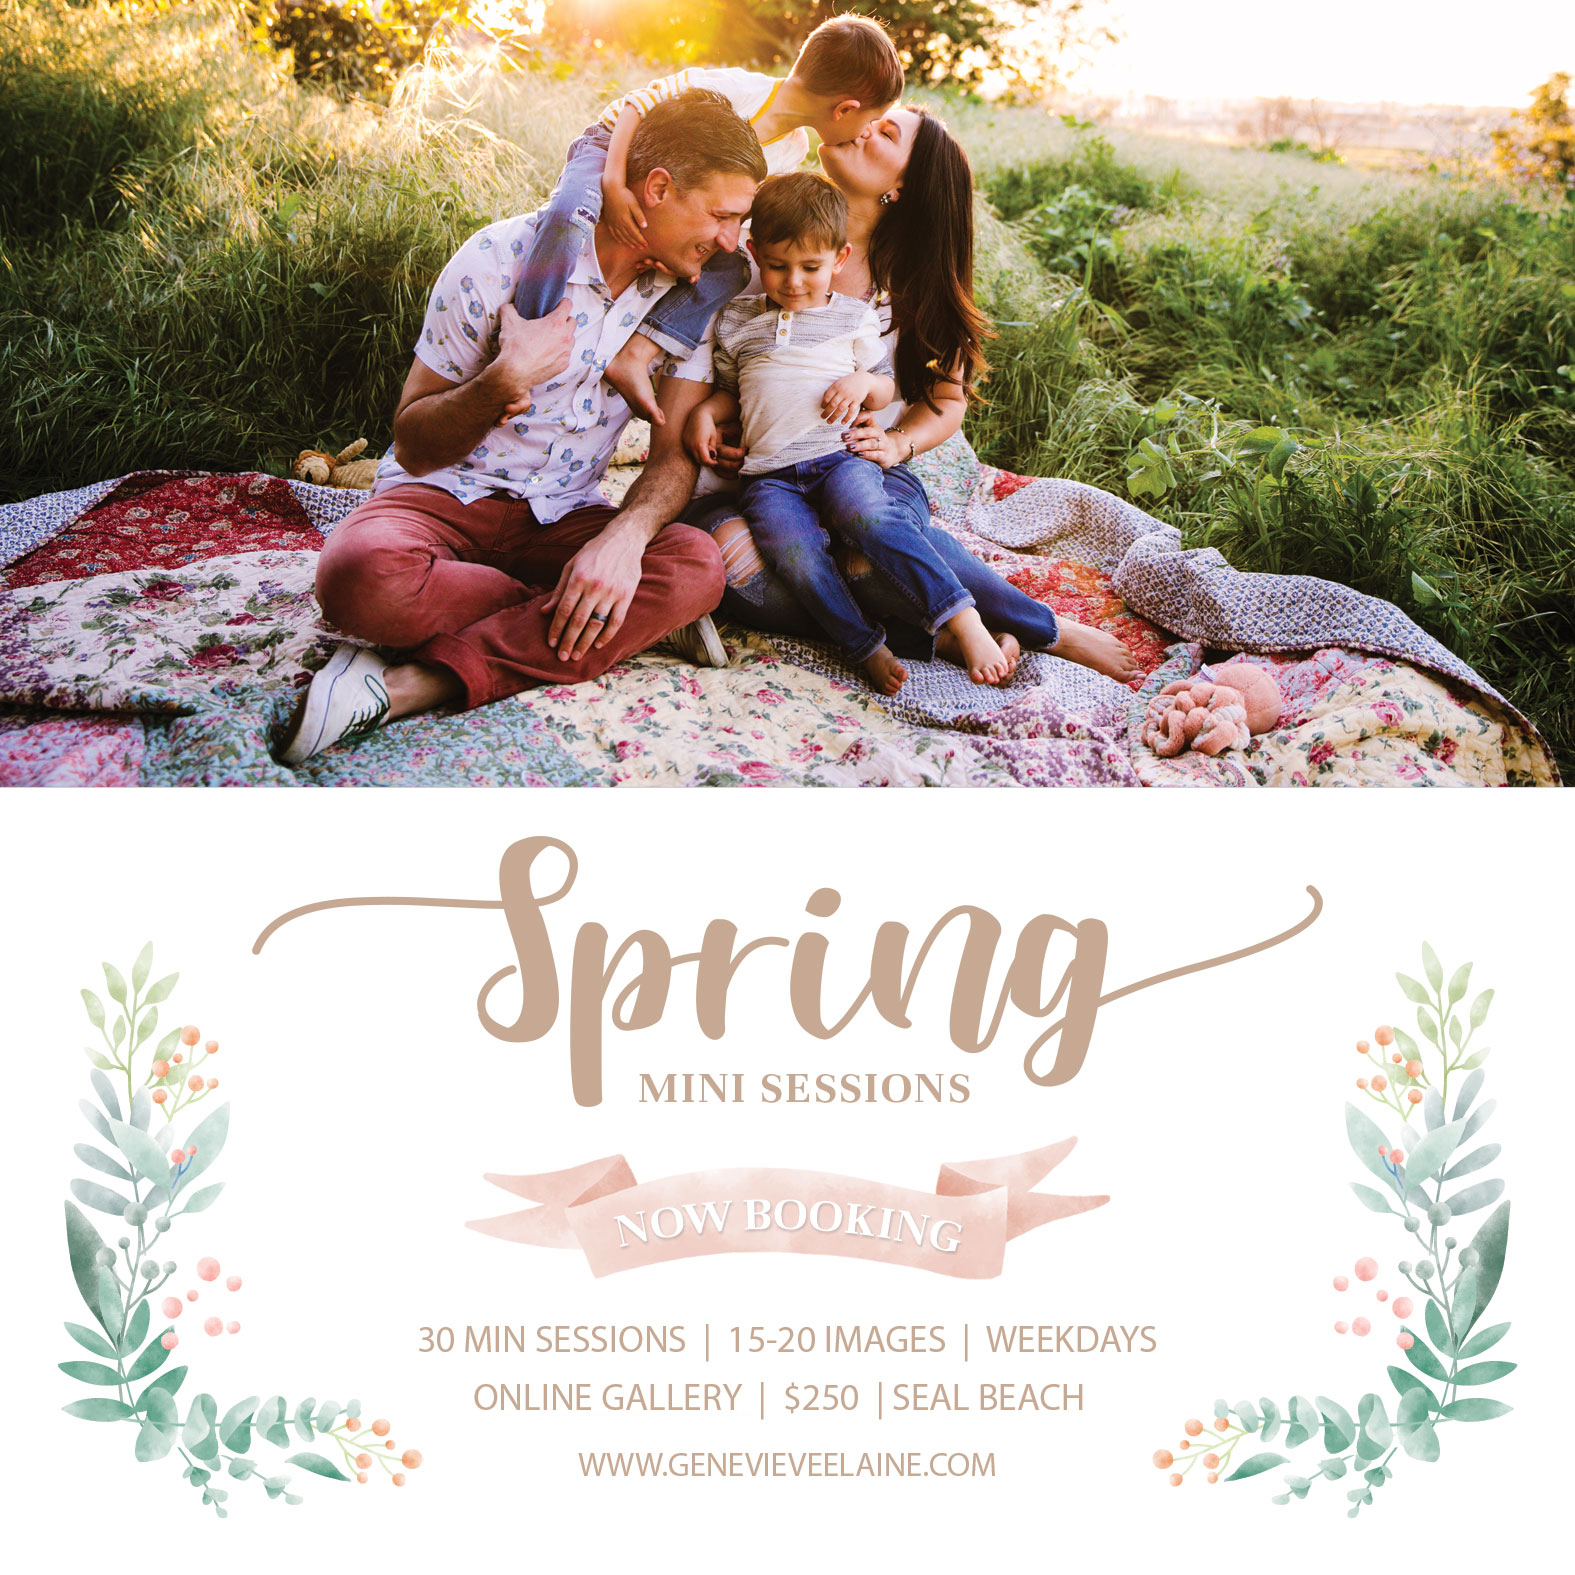 Los Angeles & Orange County spring mini sessions